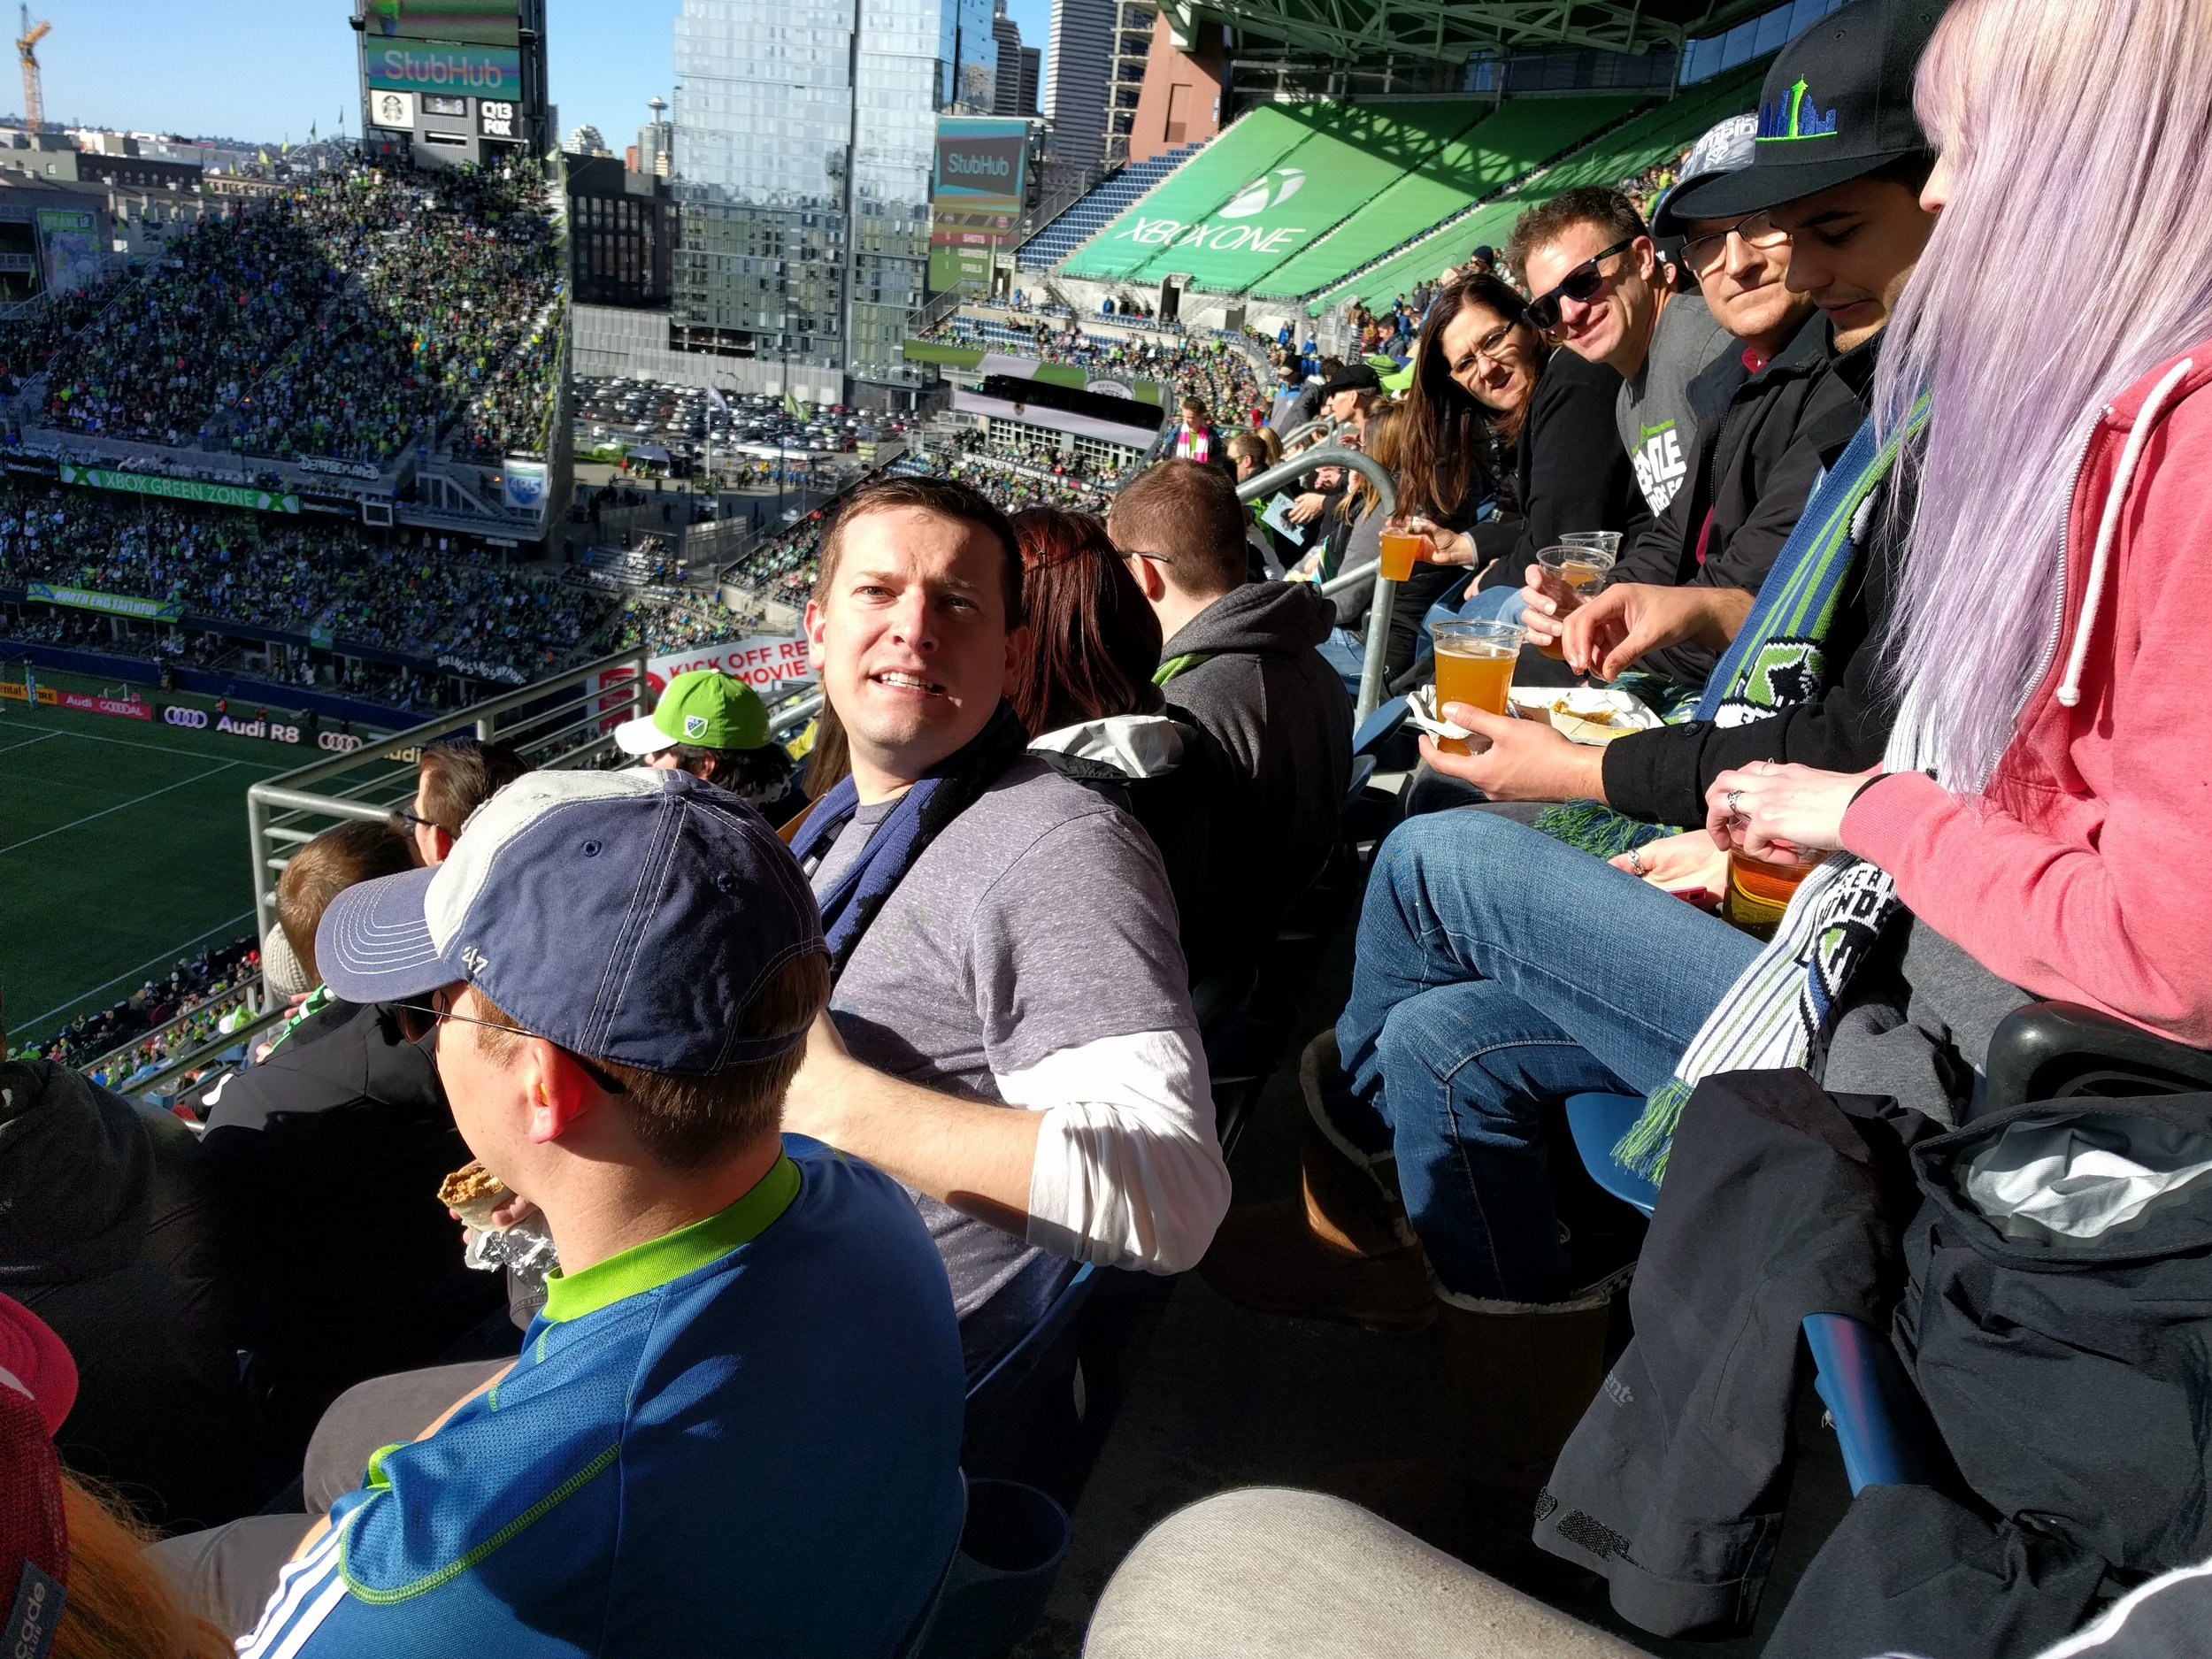 """Board Member Jack Reynolds, seen here striking his """"Growl-like-a-tiger"""" pose, surrounded by other amazing community members, donors, and volunteers cheering for the 2016 MLS Cup Champion Sounders at the 2017 Home Opener."""